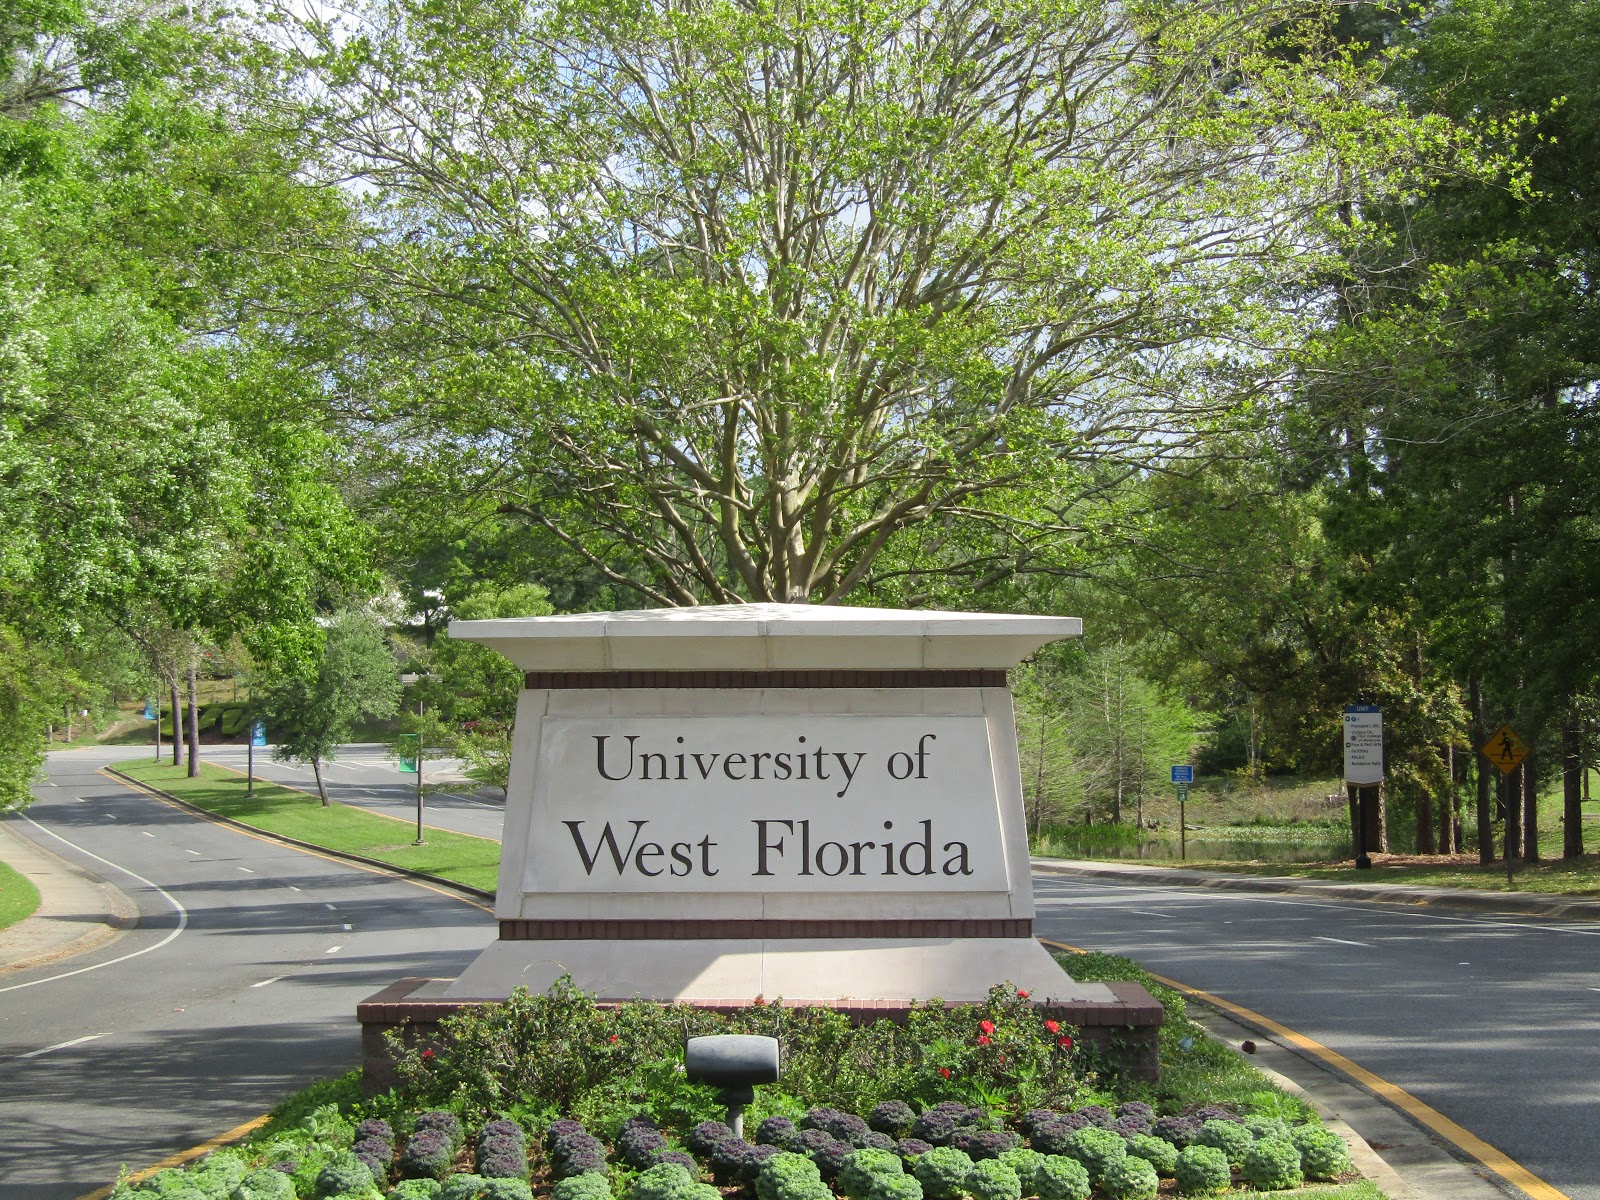 University of West Florida, Pensacola, FL 32514